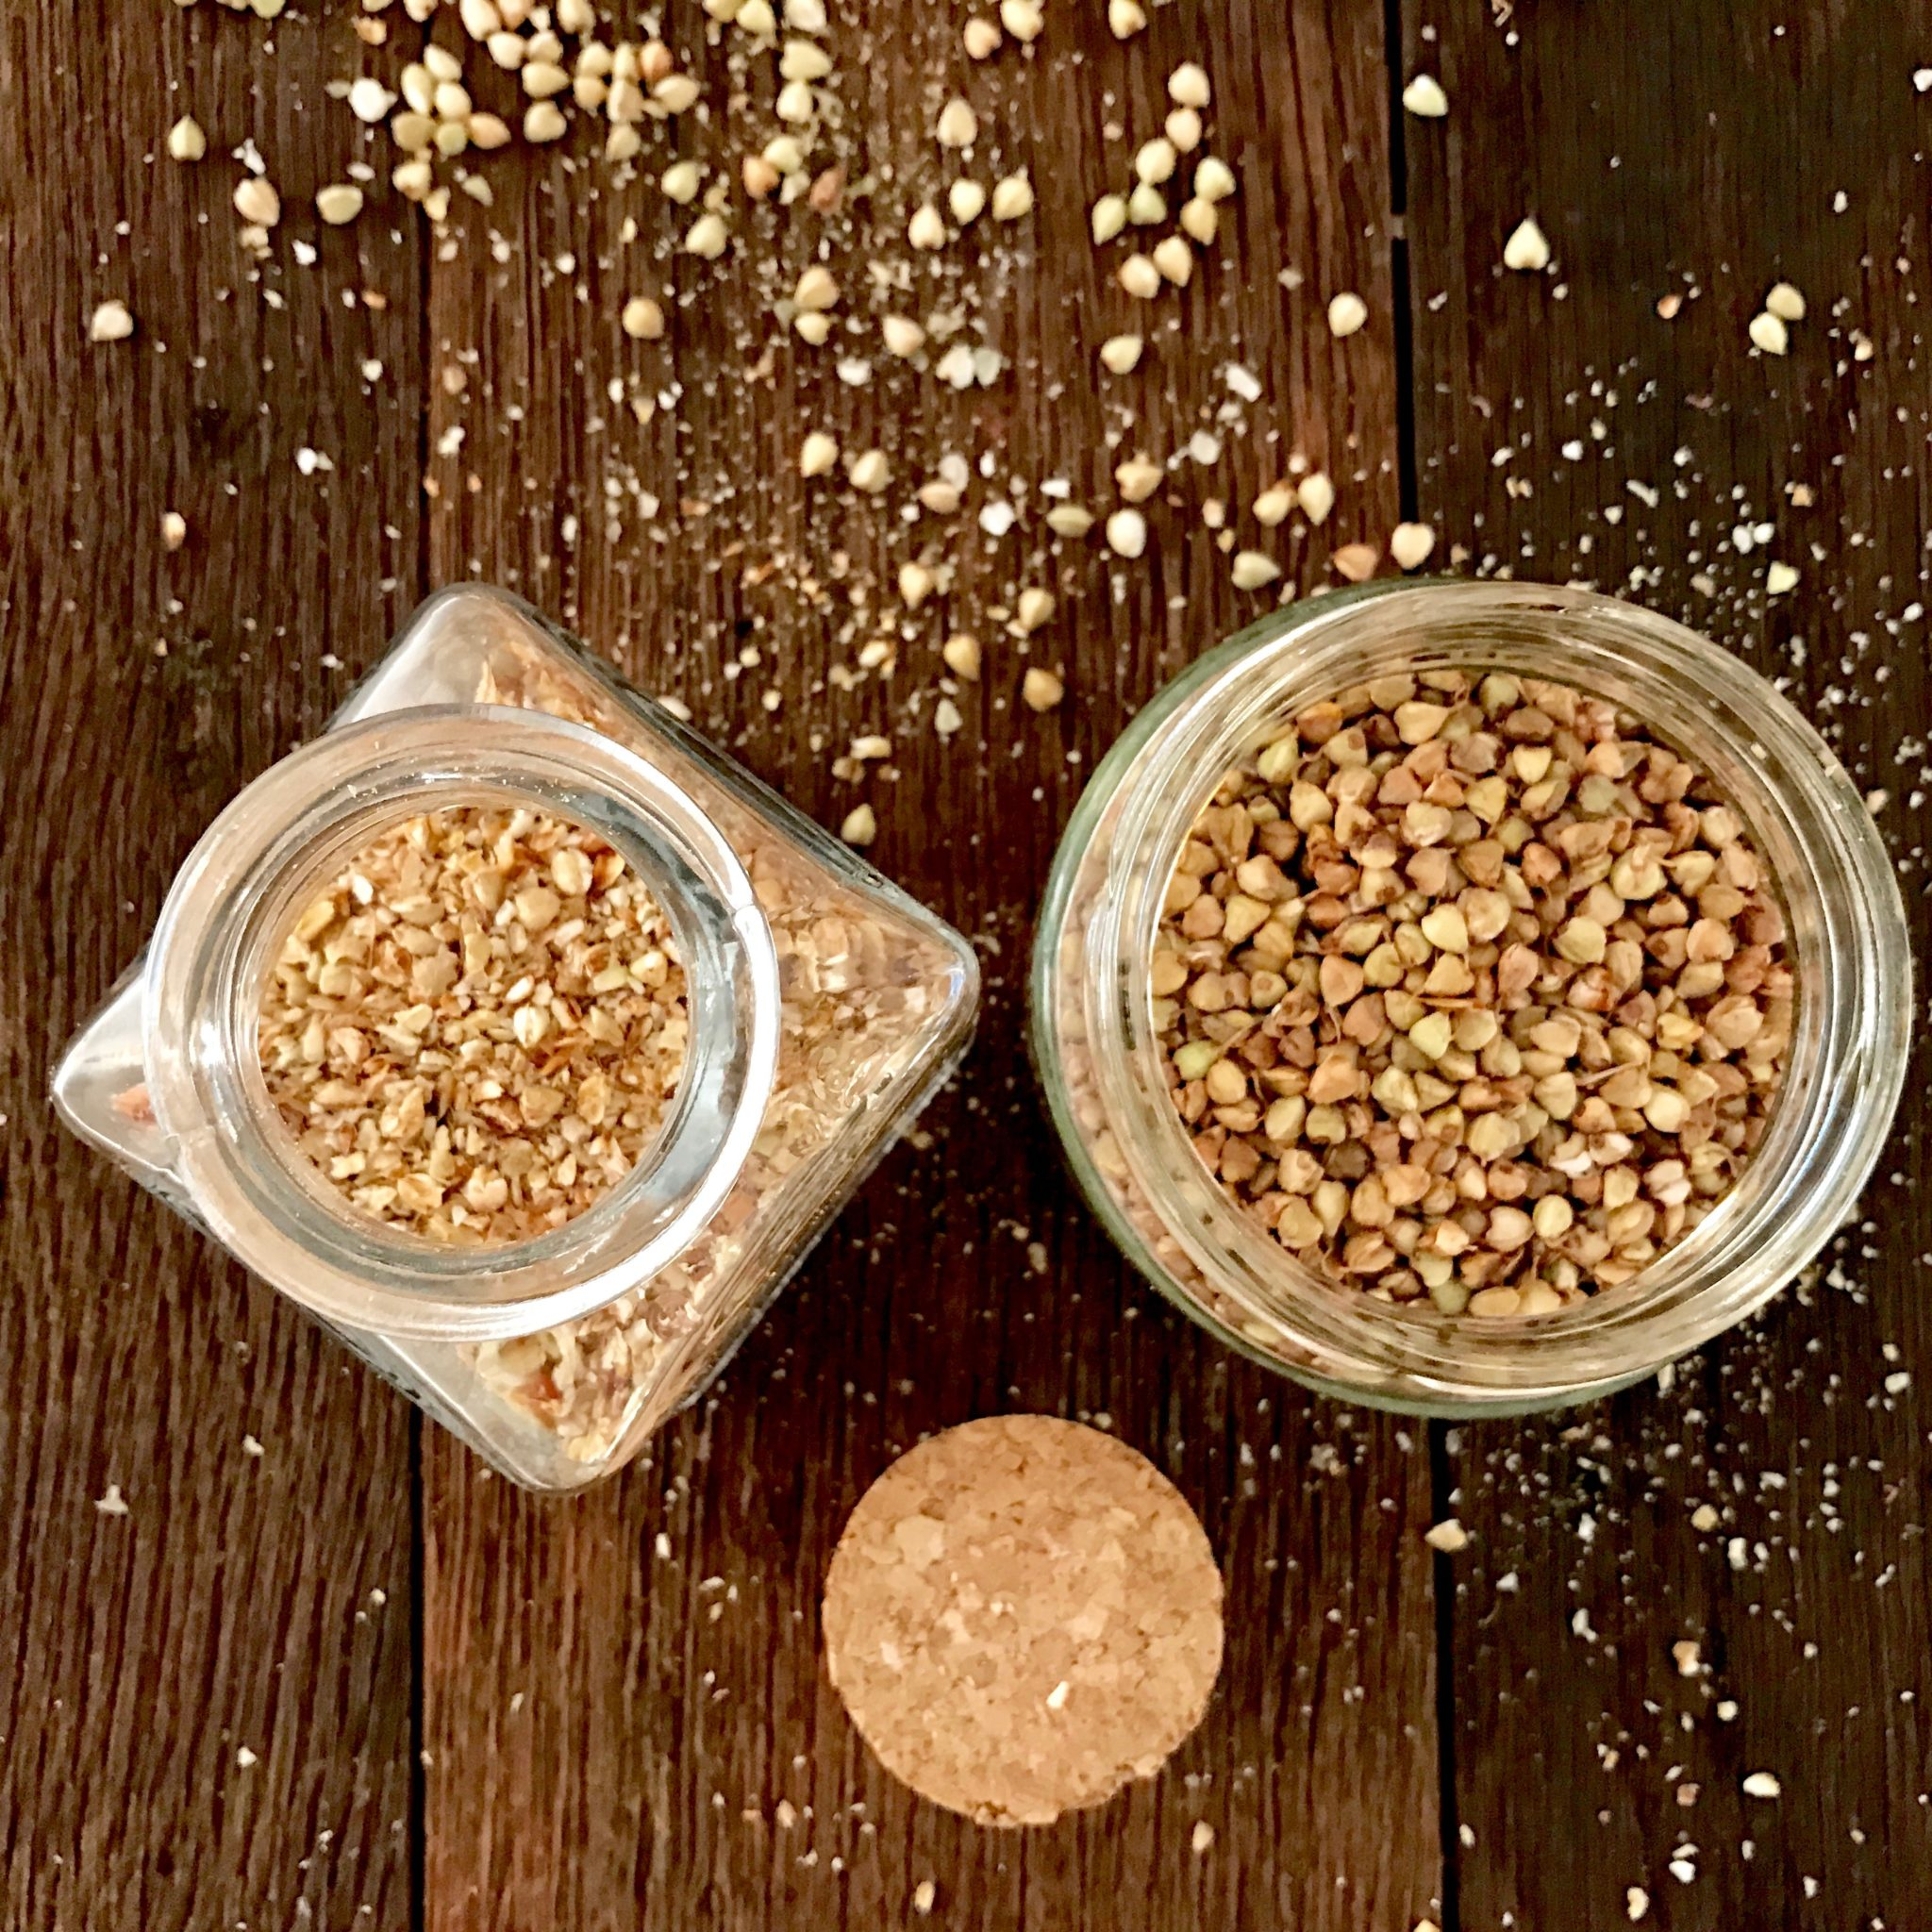 store sprouted-toasted buckwheat in glass jars